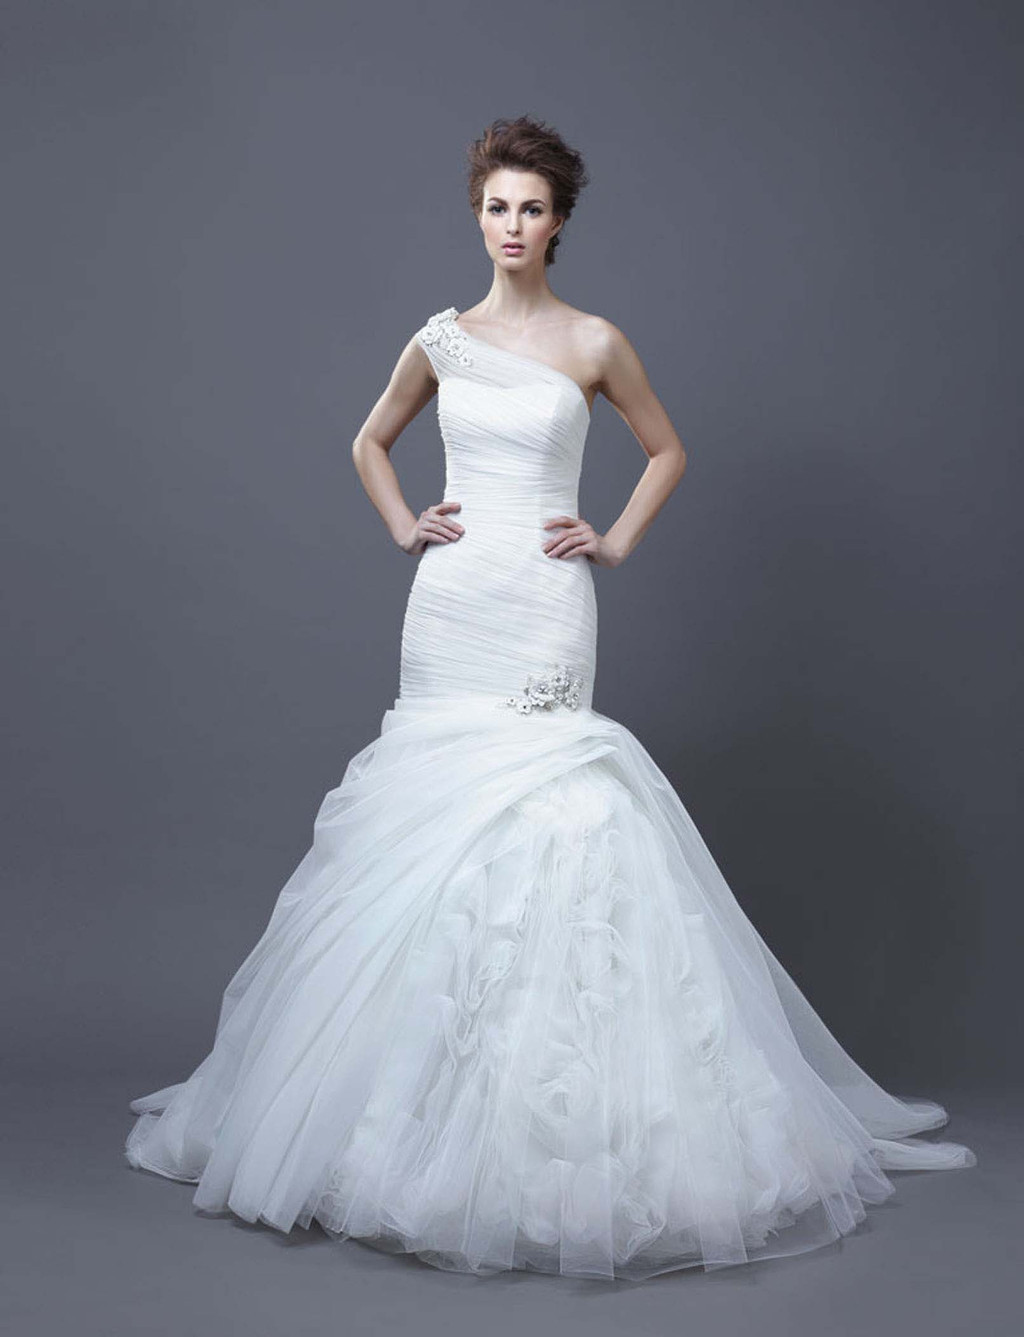 2013 Wedding Dress by Enzoani Bridal Hadara